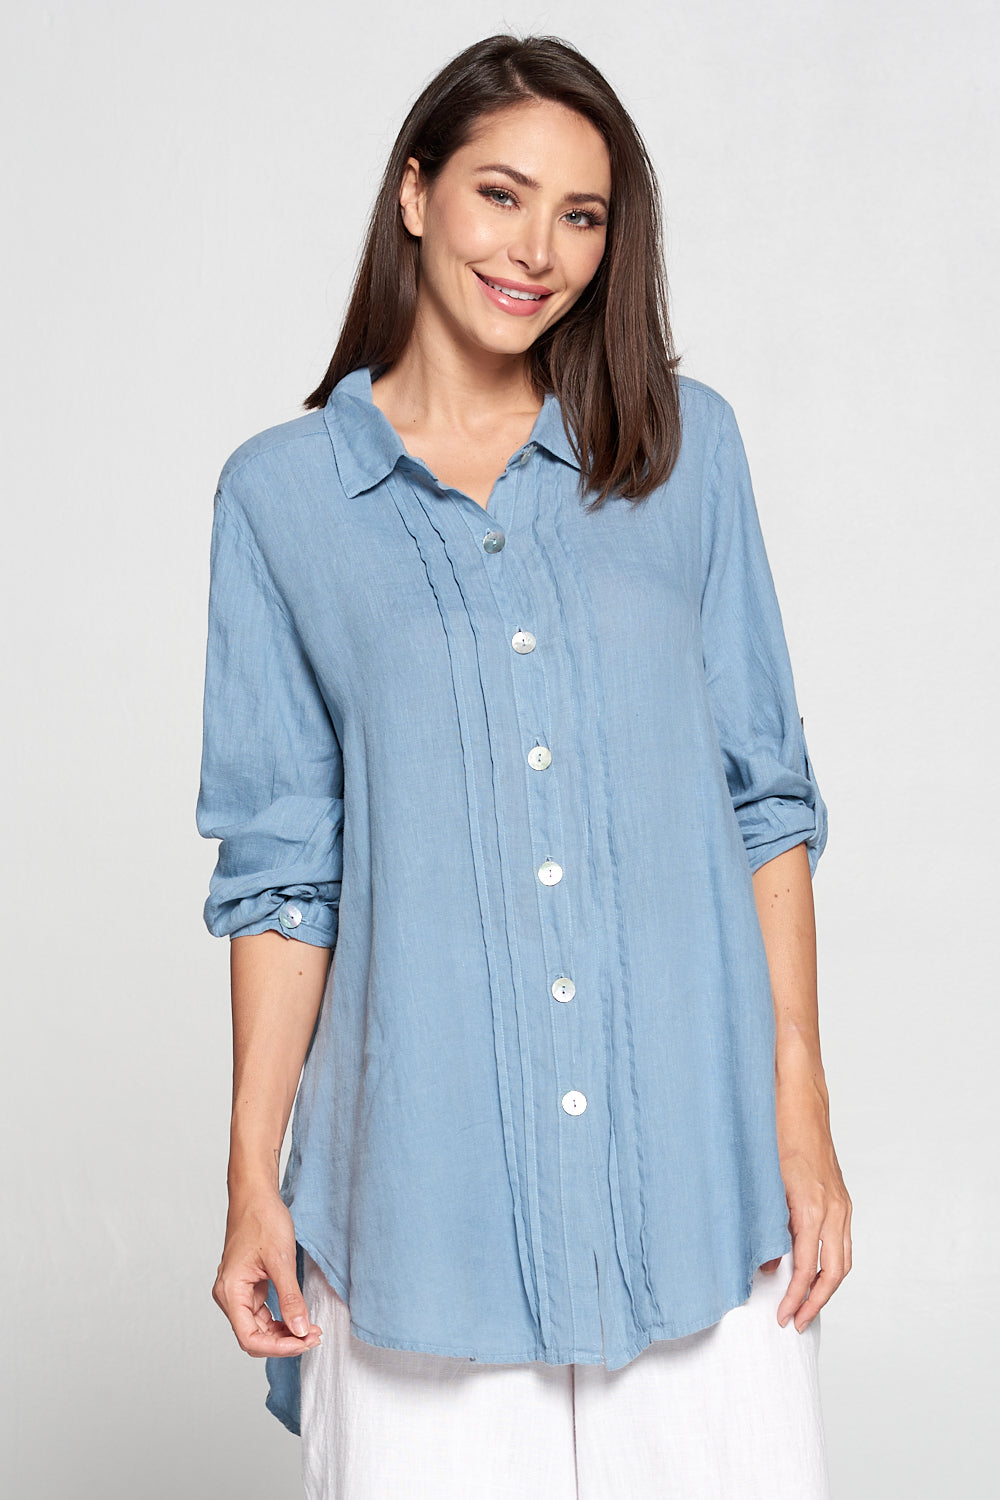 Match Point Linen Button Down Collared Tunic with Pleats  HLT550 in Light Chambray - Lori's Lovelies